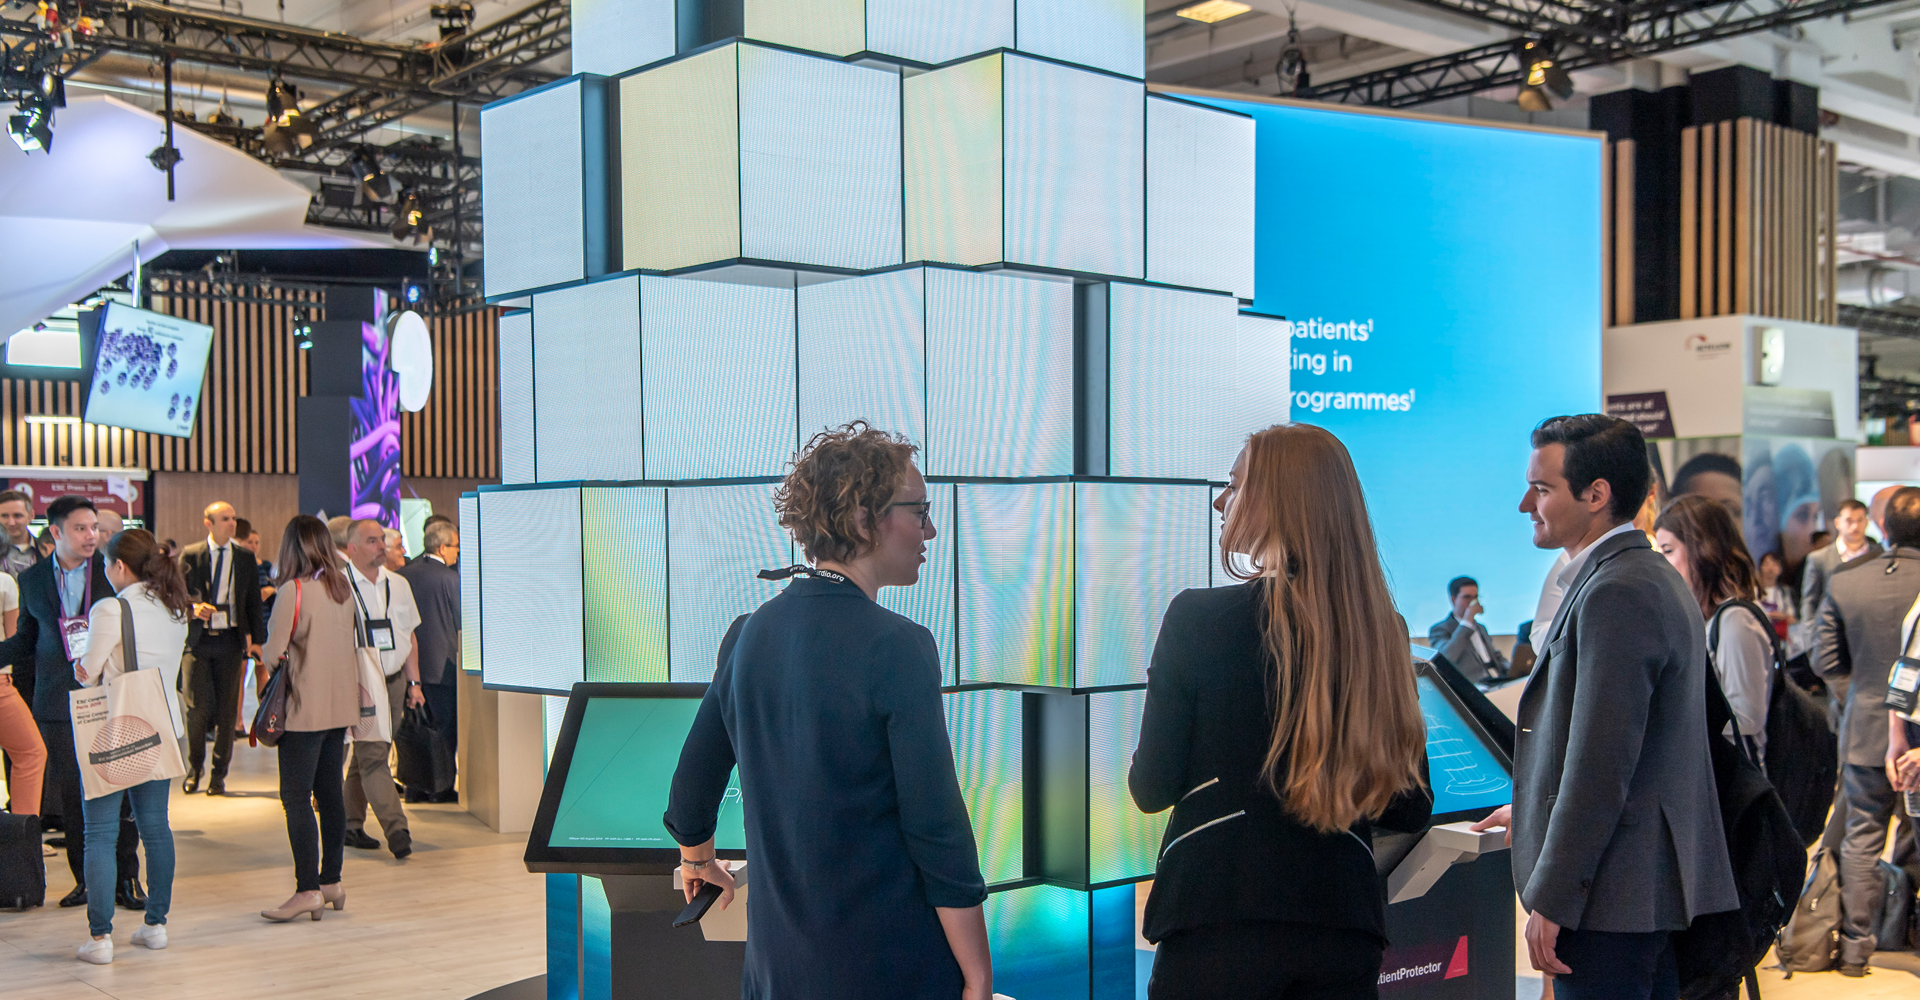 LED Sculpture with experiential tech and strong customer engagement at ESC 2019 by MCCGLC